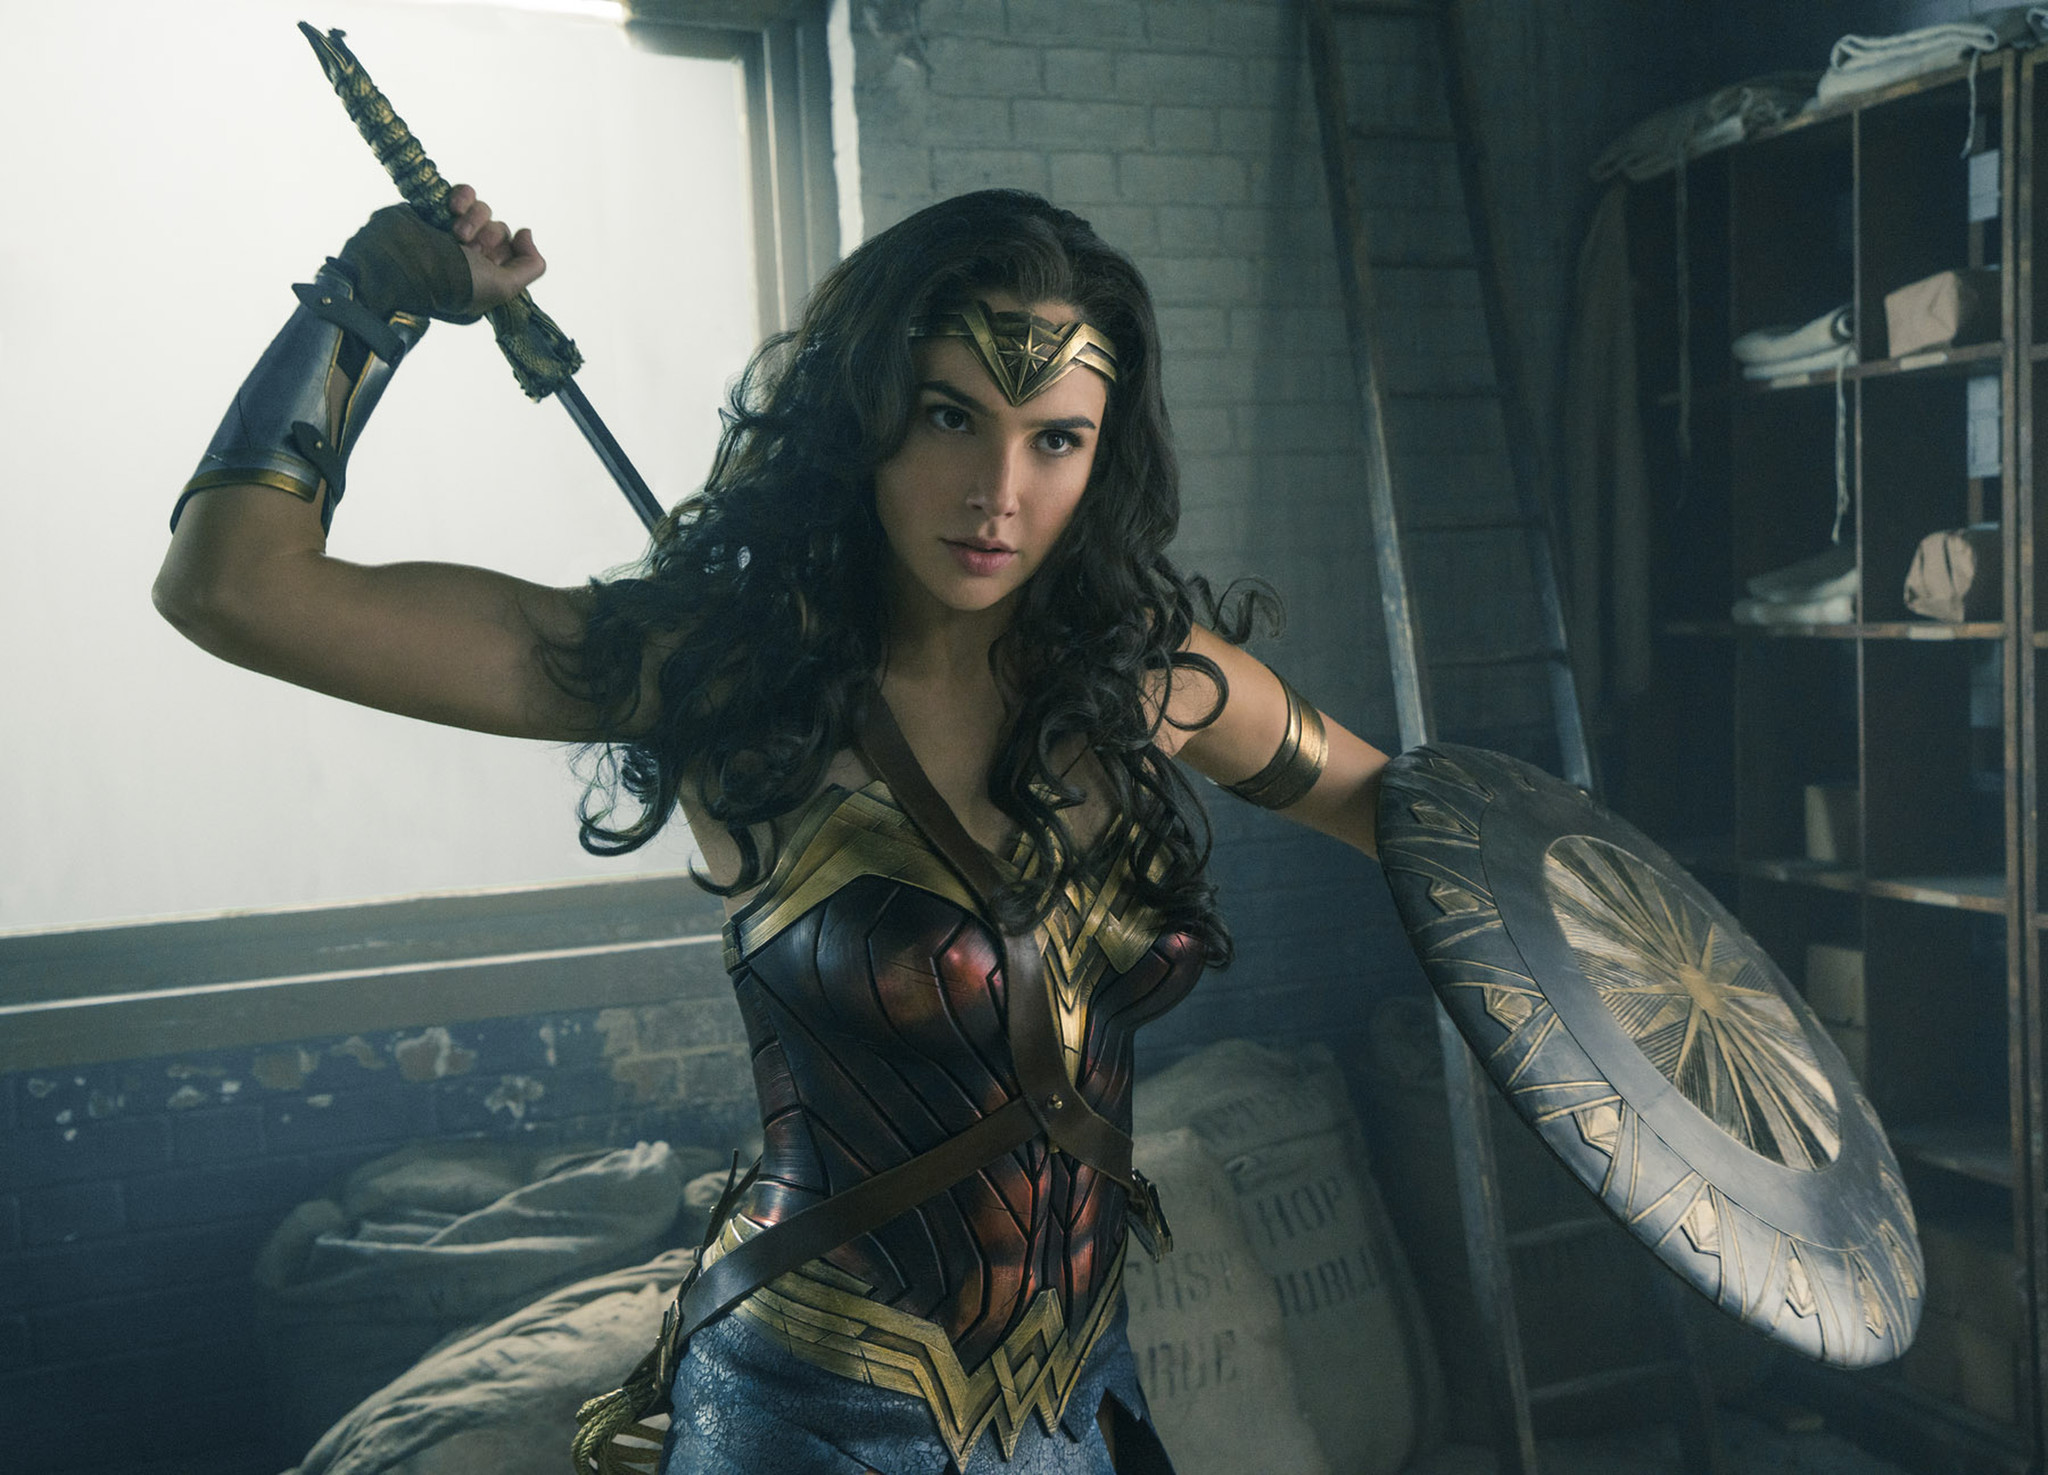 Gal Gadot stars as the title character in